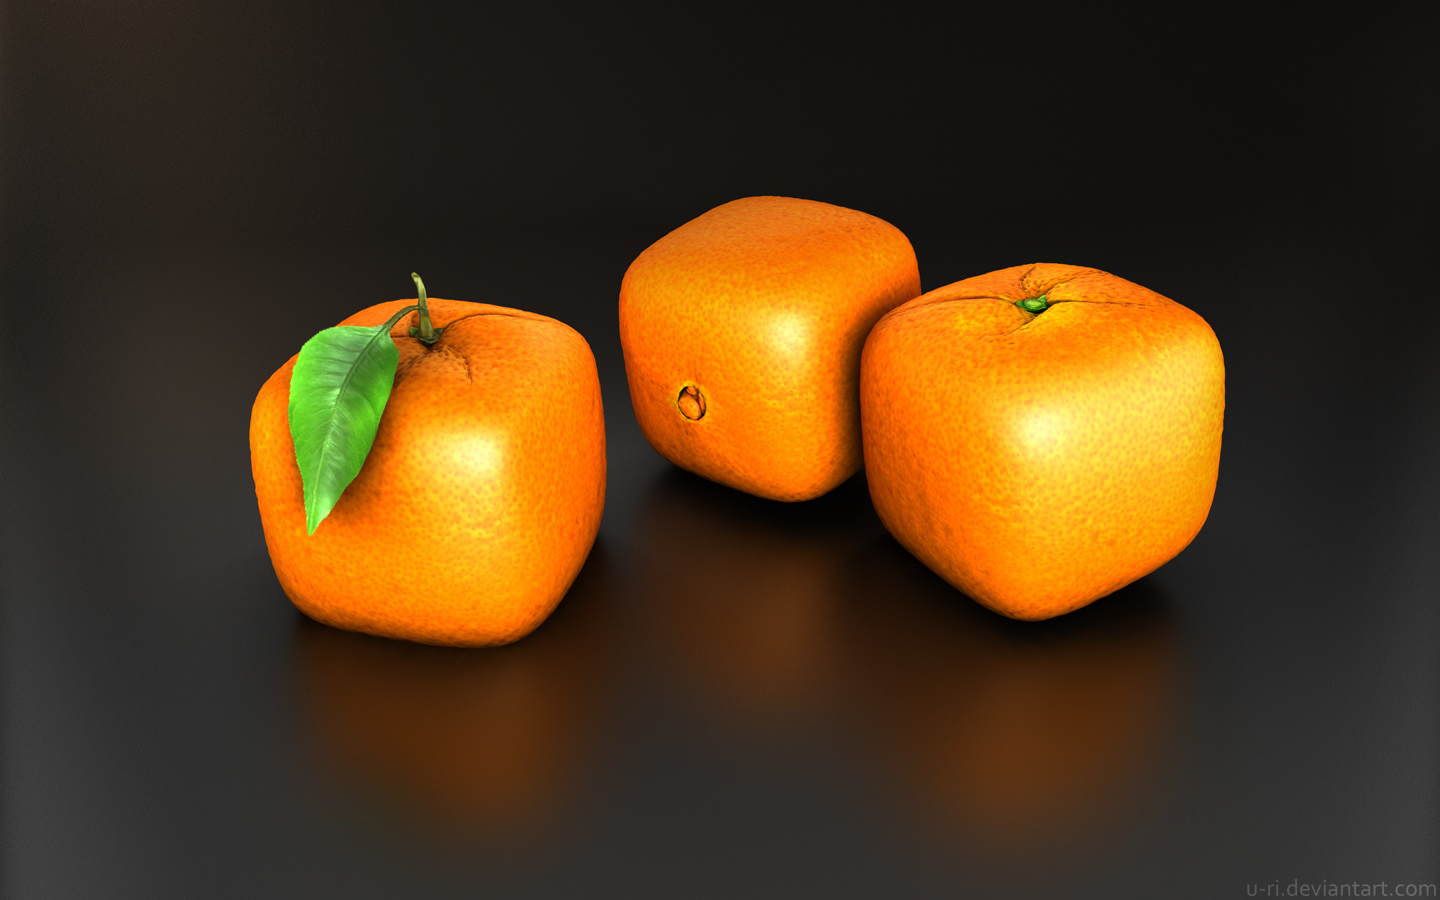 leaves design oranges cubes HD Wallpaper